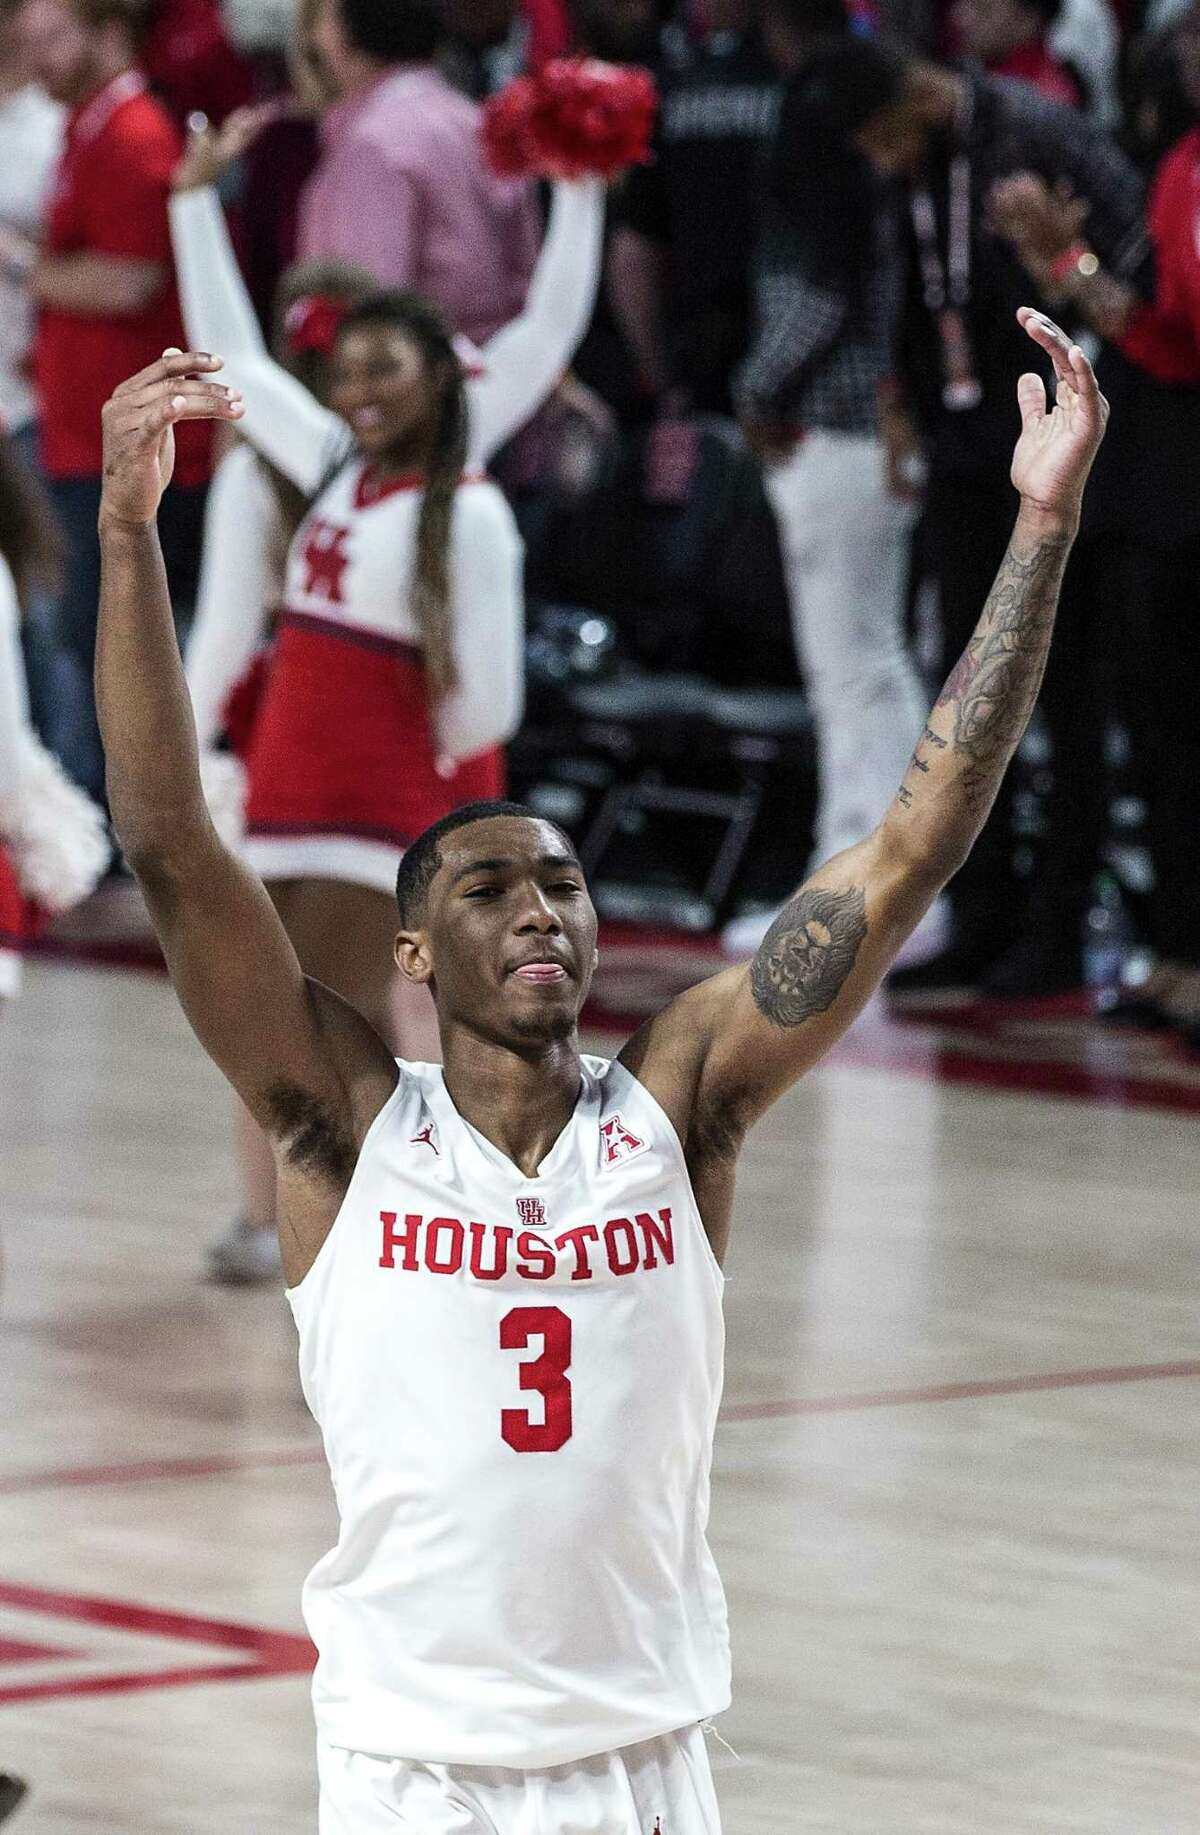 University of Houston guard Armoni Brooks celebrates as he runs off the floor after leading the Cougars with 22 points in a 65-61 win over No. 18 Oregon on Saturday night.